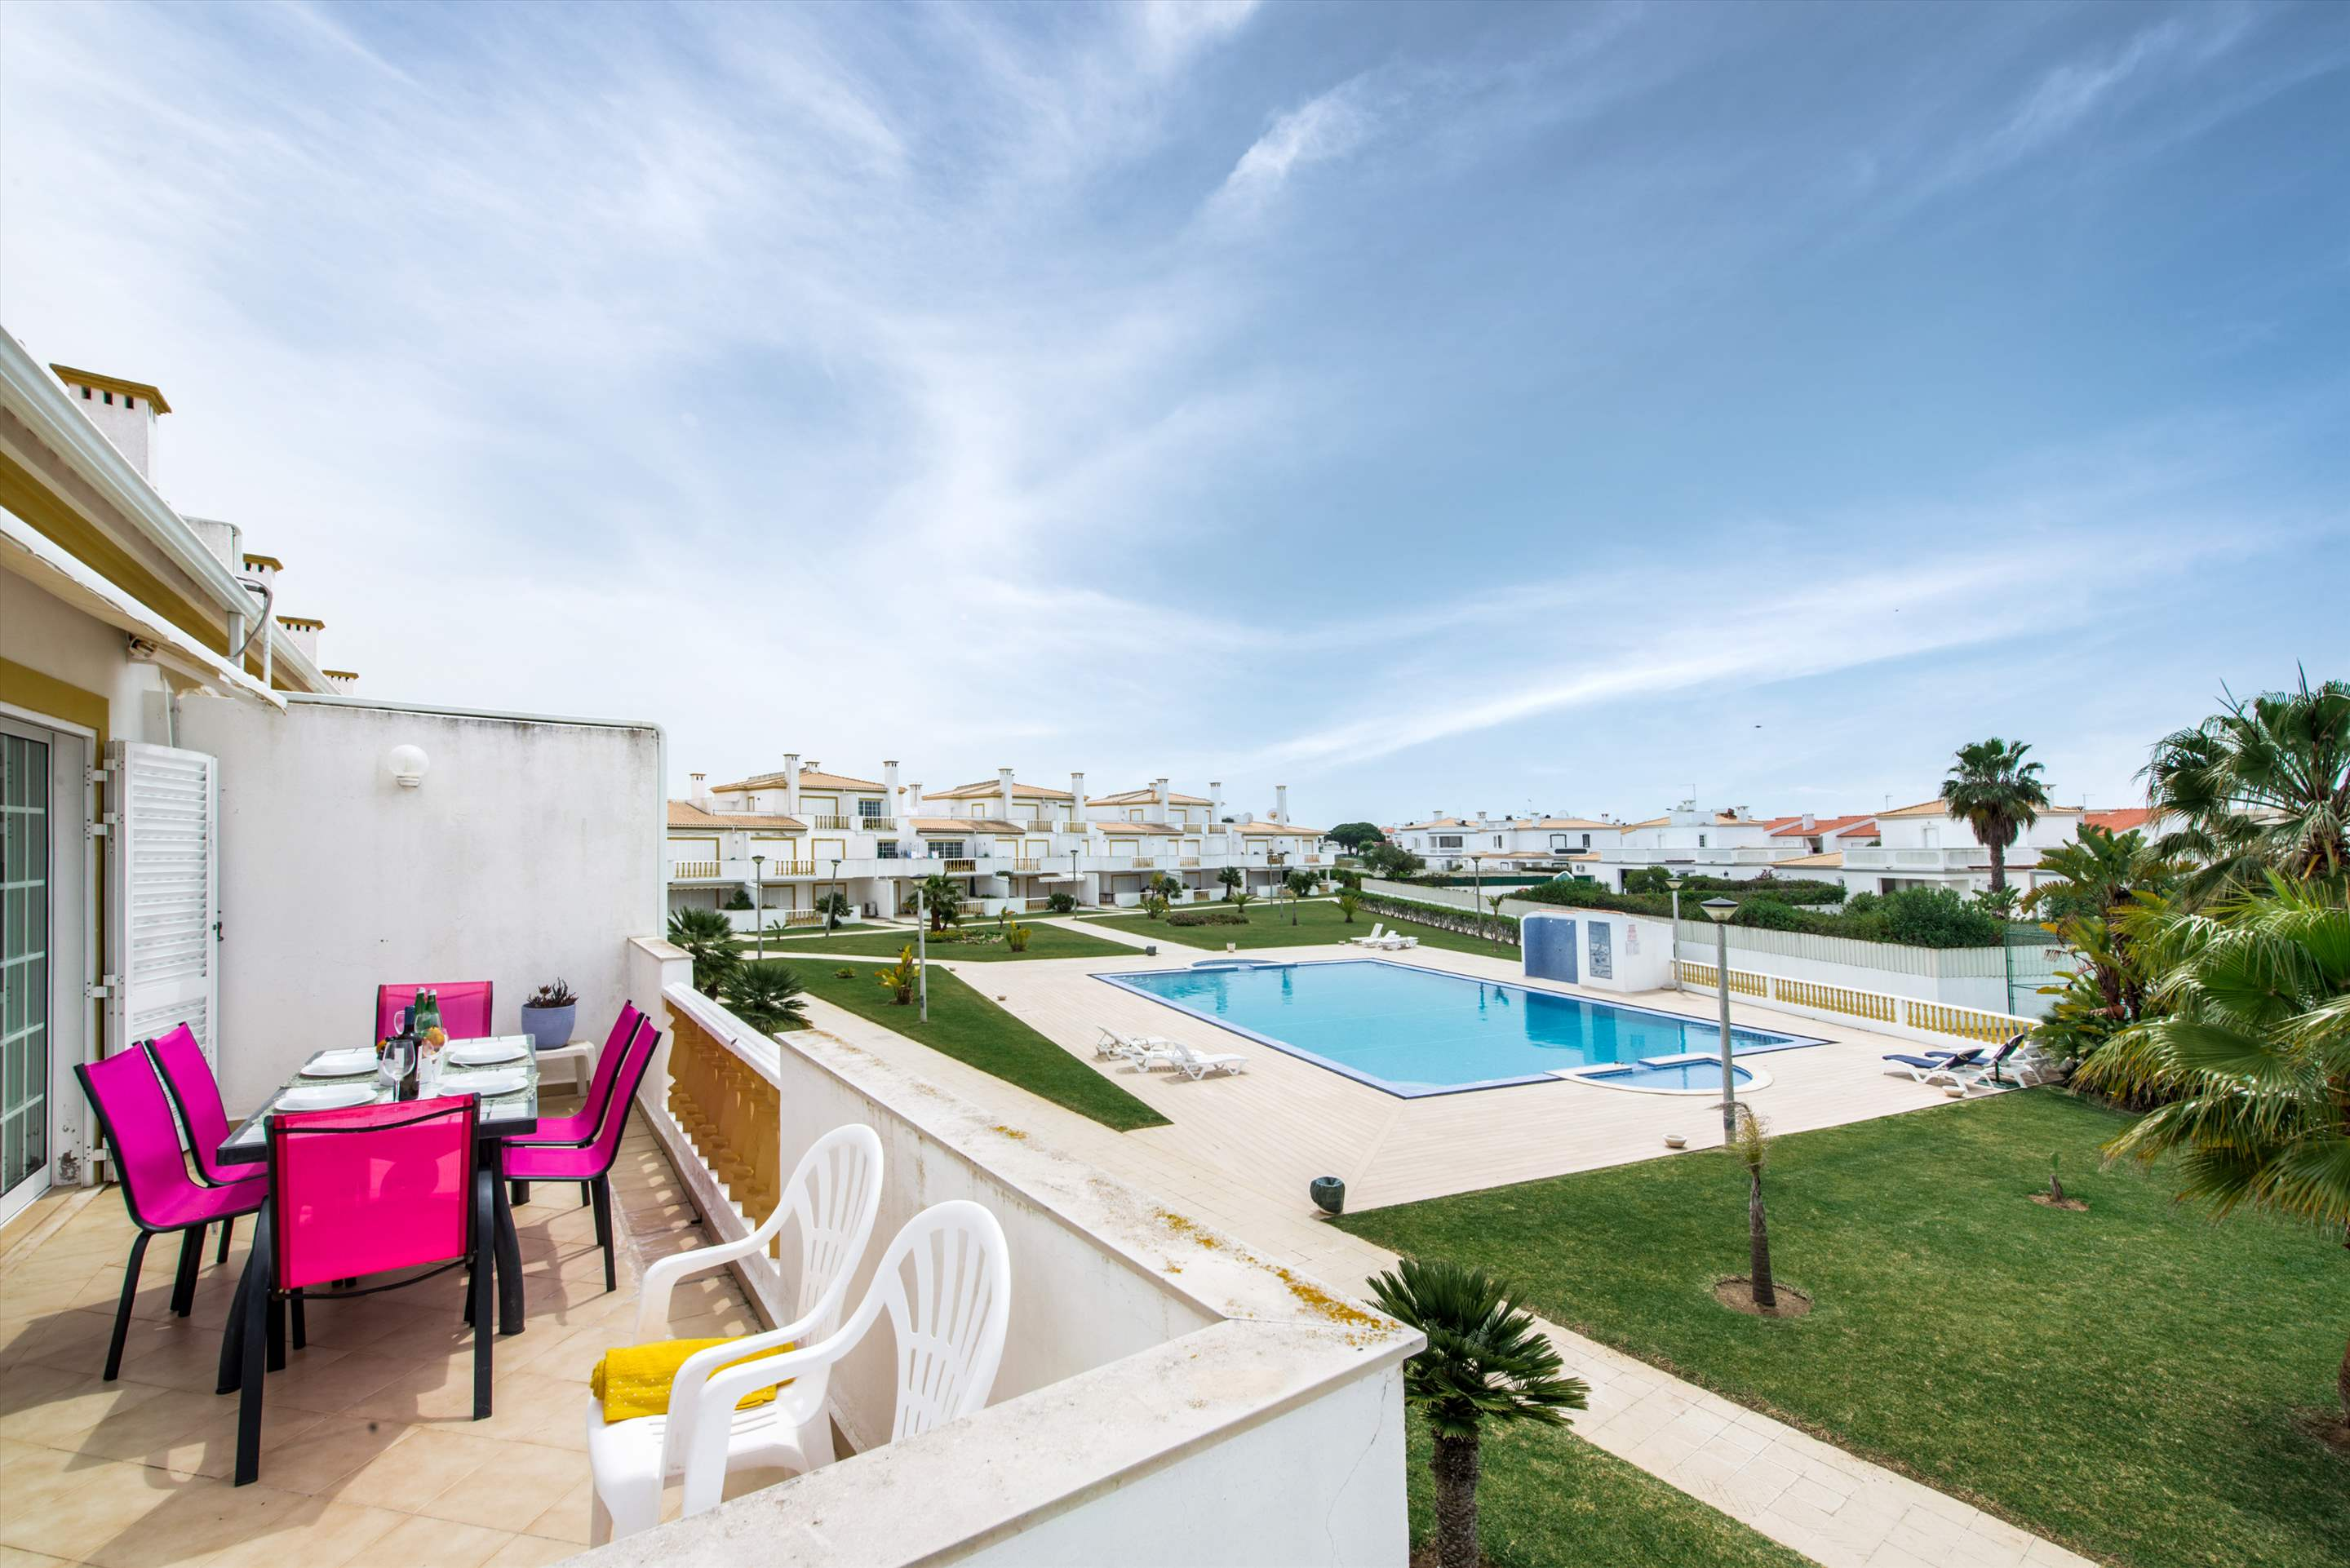 Apt O Monte, For Up to 4 Persons, 2 bedroom apartment in Gale, Vale da Parra and Guia, Algarve Photo #13